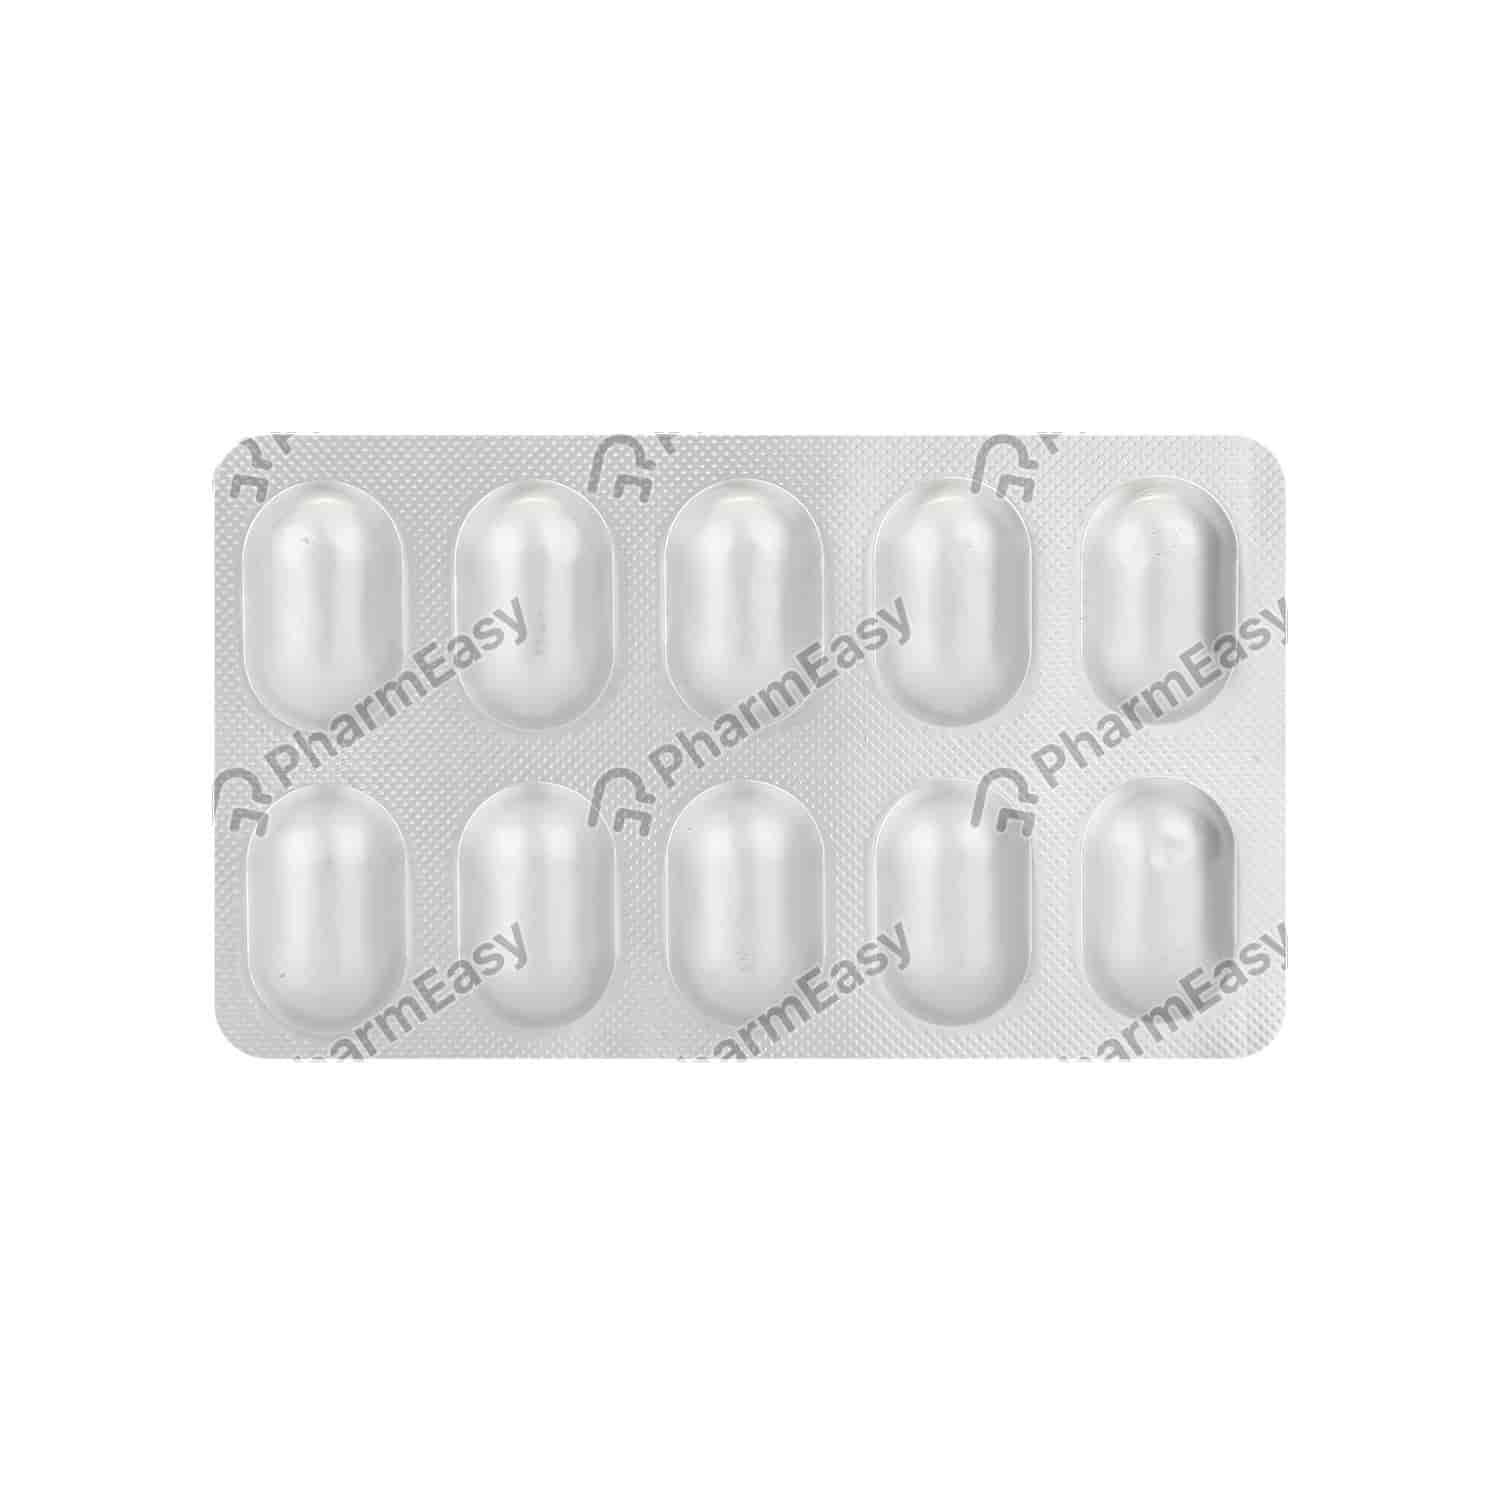 Apribose M 0.3mg Tablet